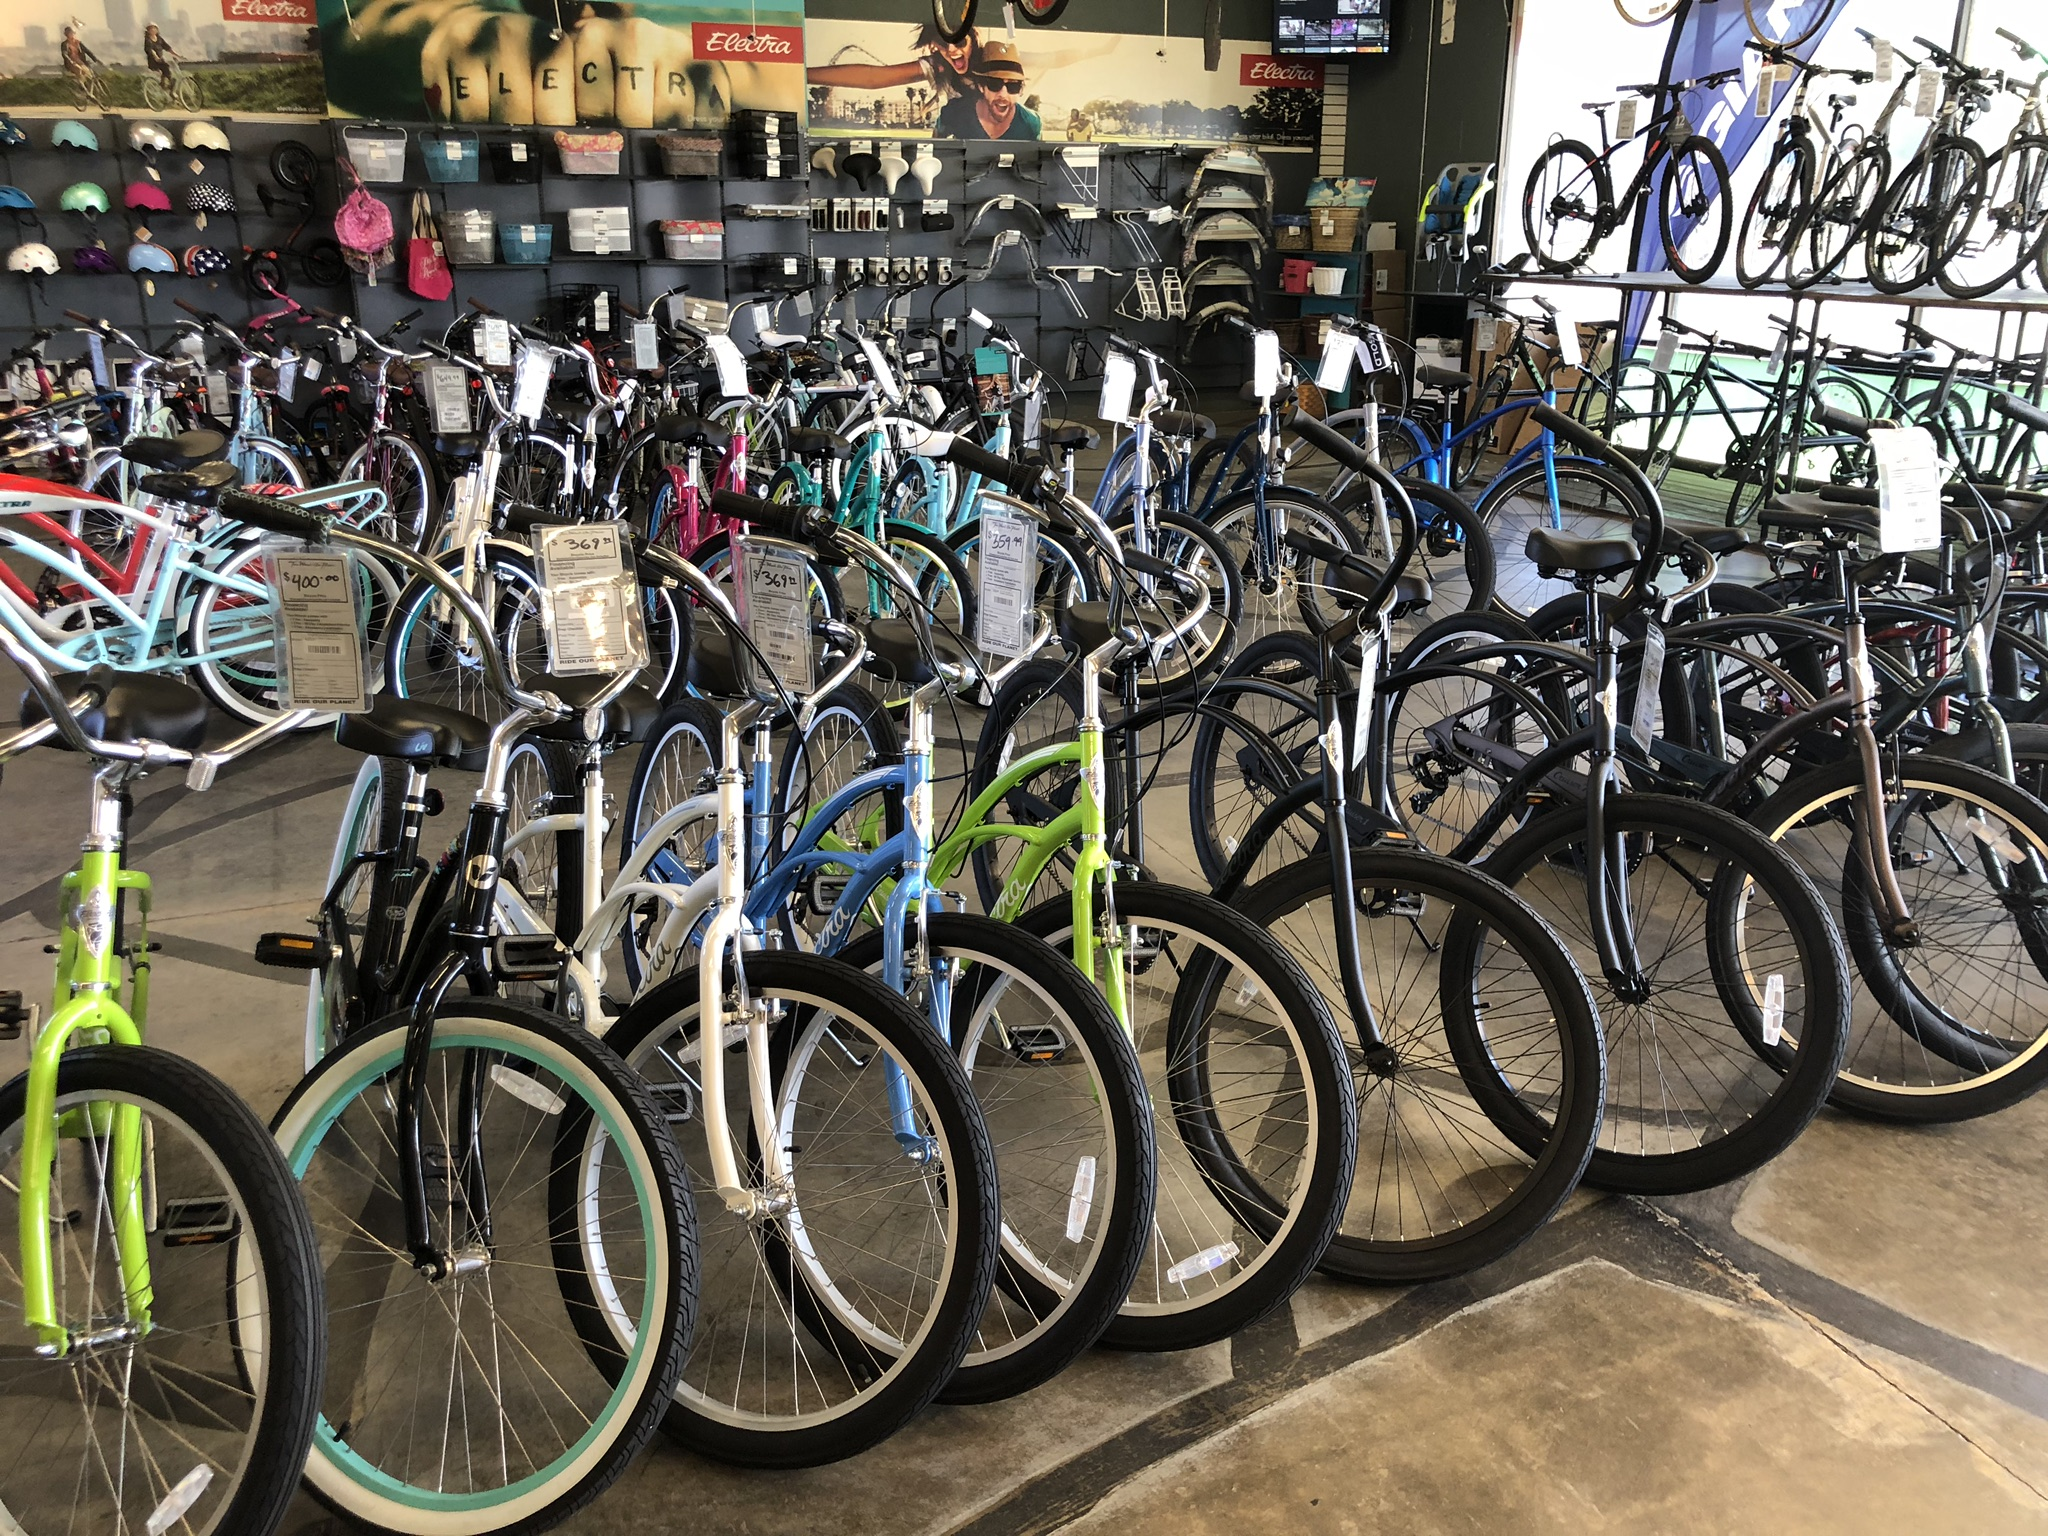 Bicycle Store in Costa Mesa California 1